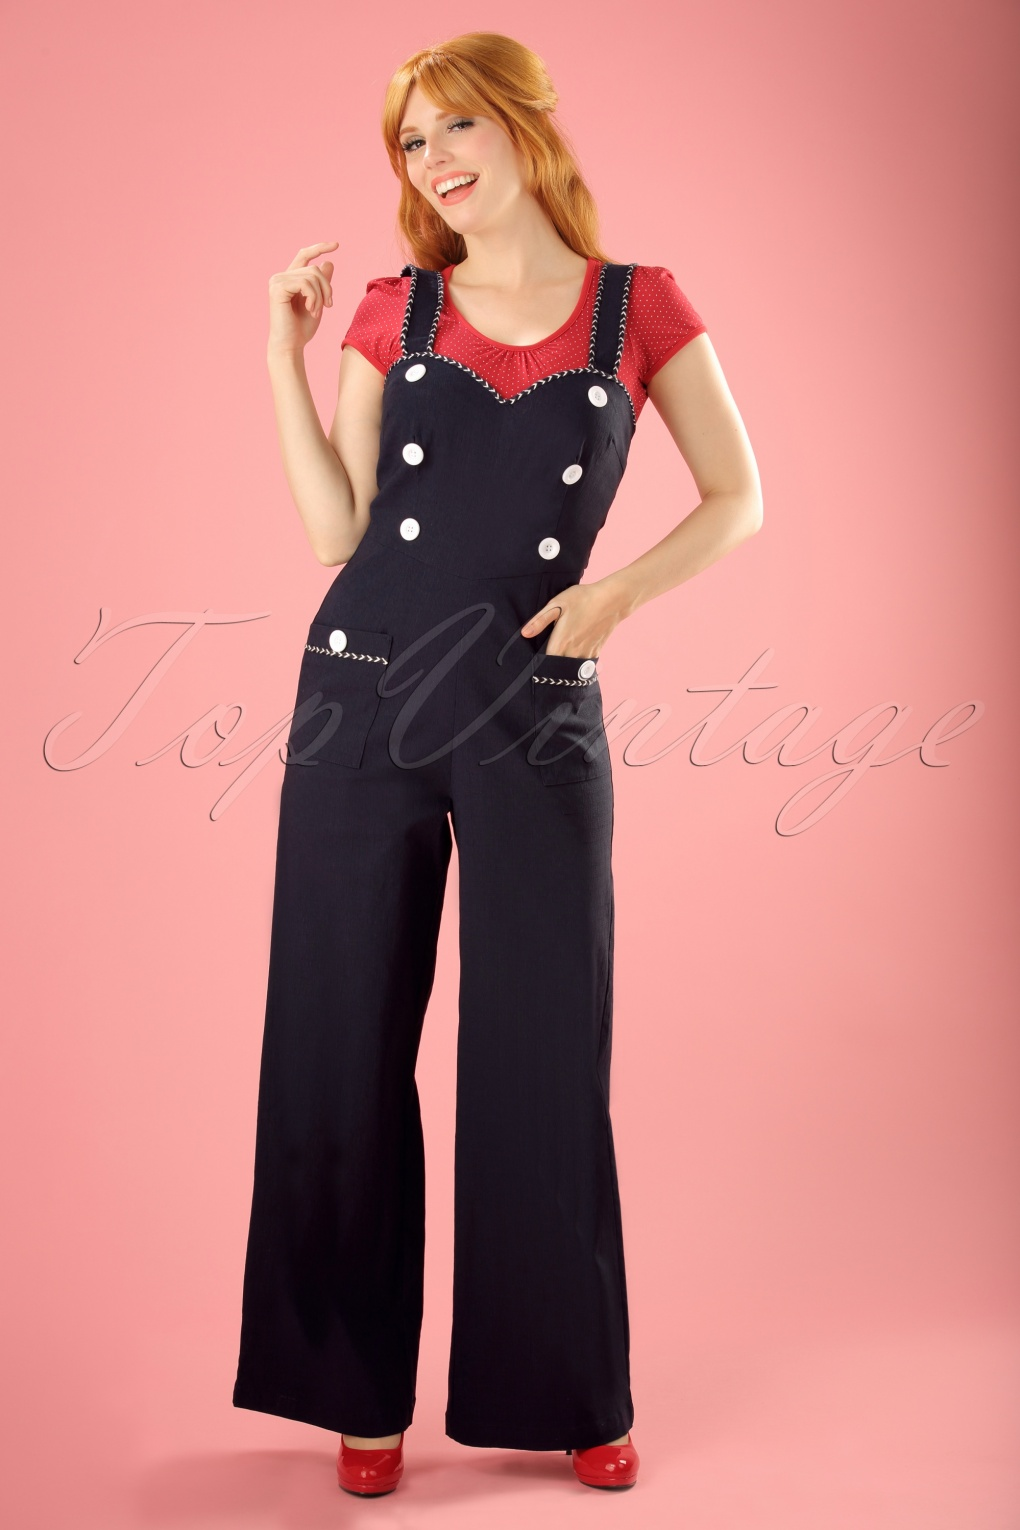 Vintage Overalls 1910s -1950s Pictures and History 50s Maggie May Nautical Jumpsuit in Navy £44.21 AT vintagedancer.com